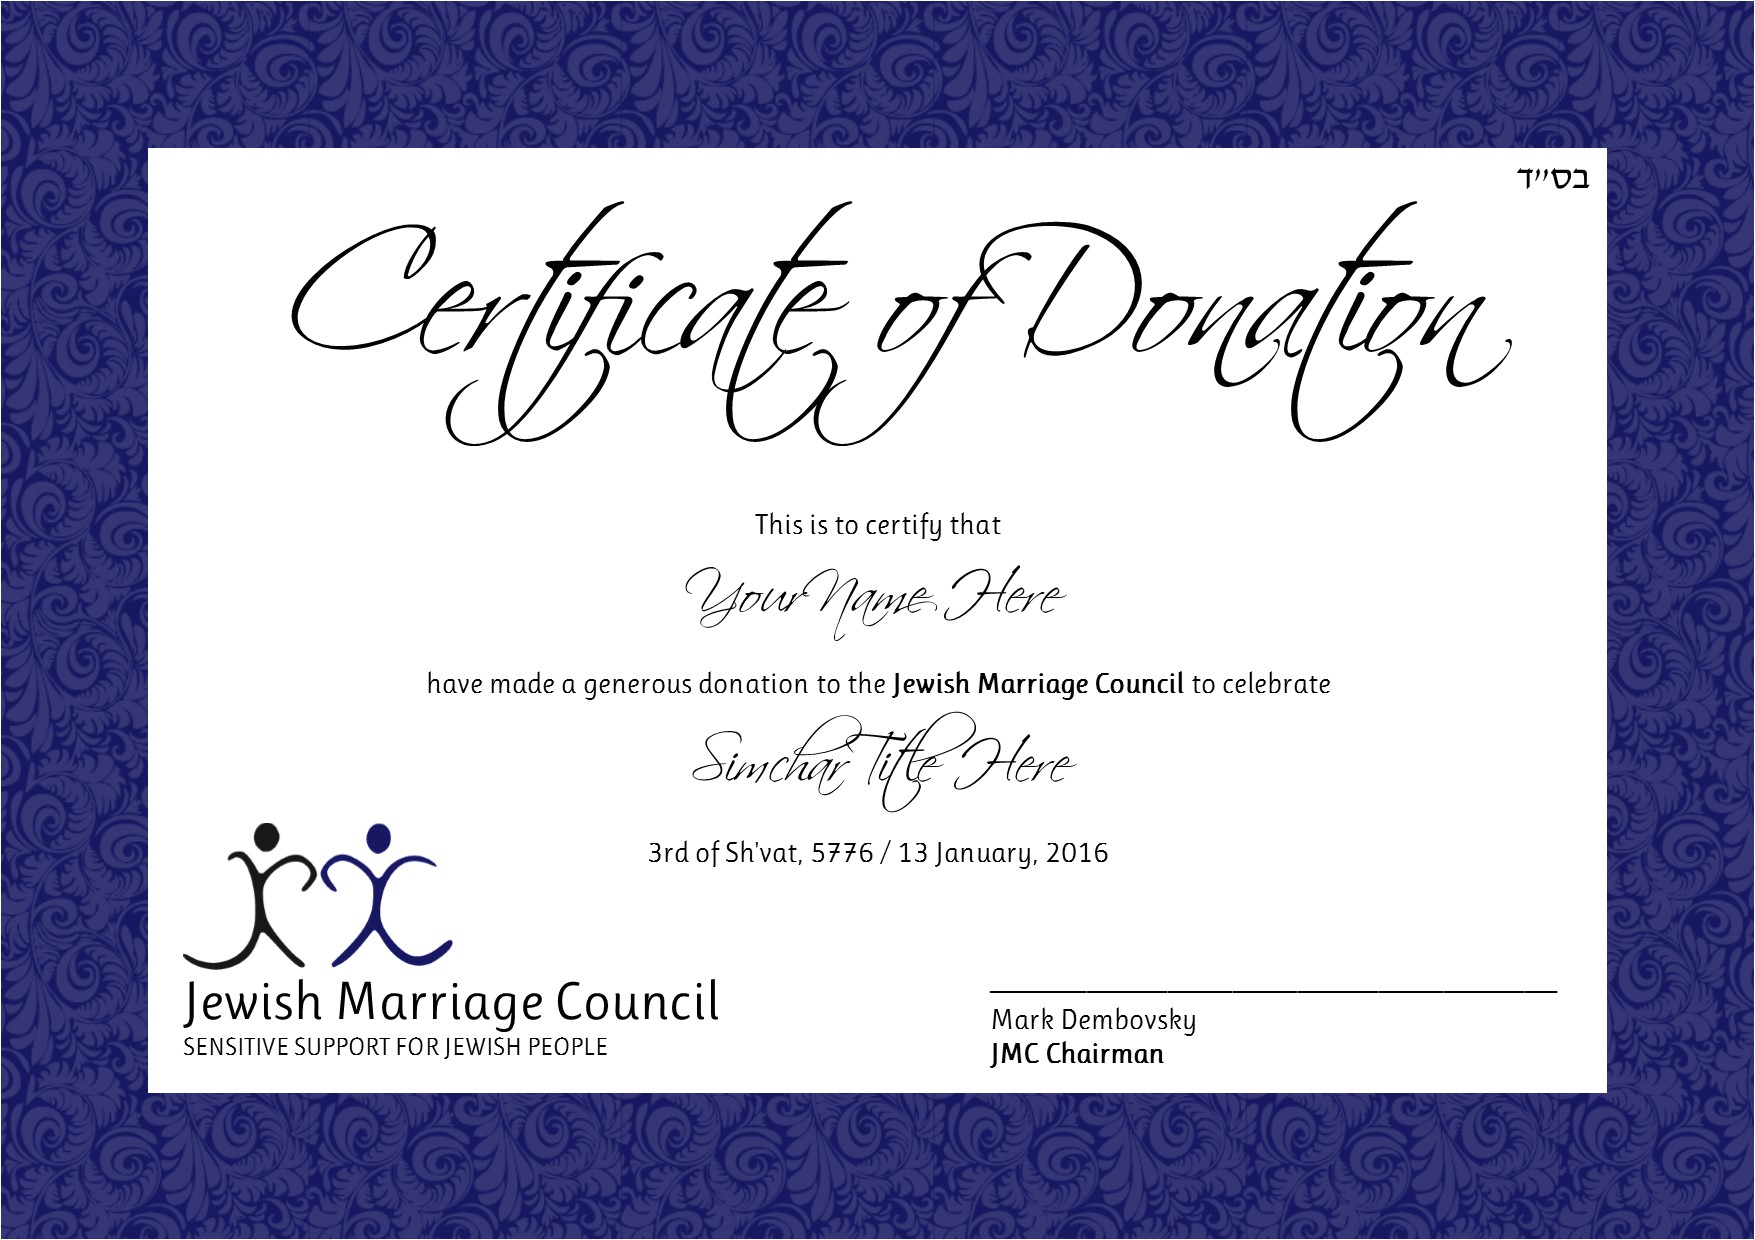 29 images of charitable donation certificate template download 4568